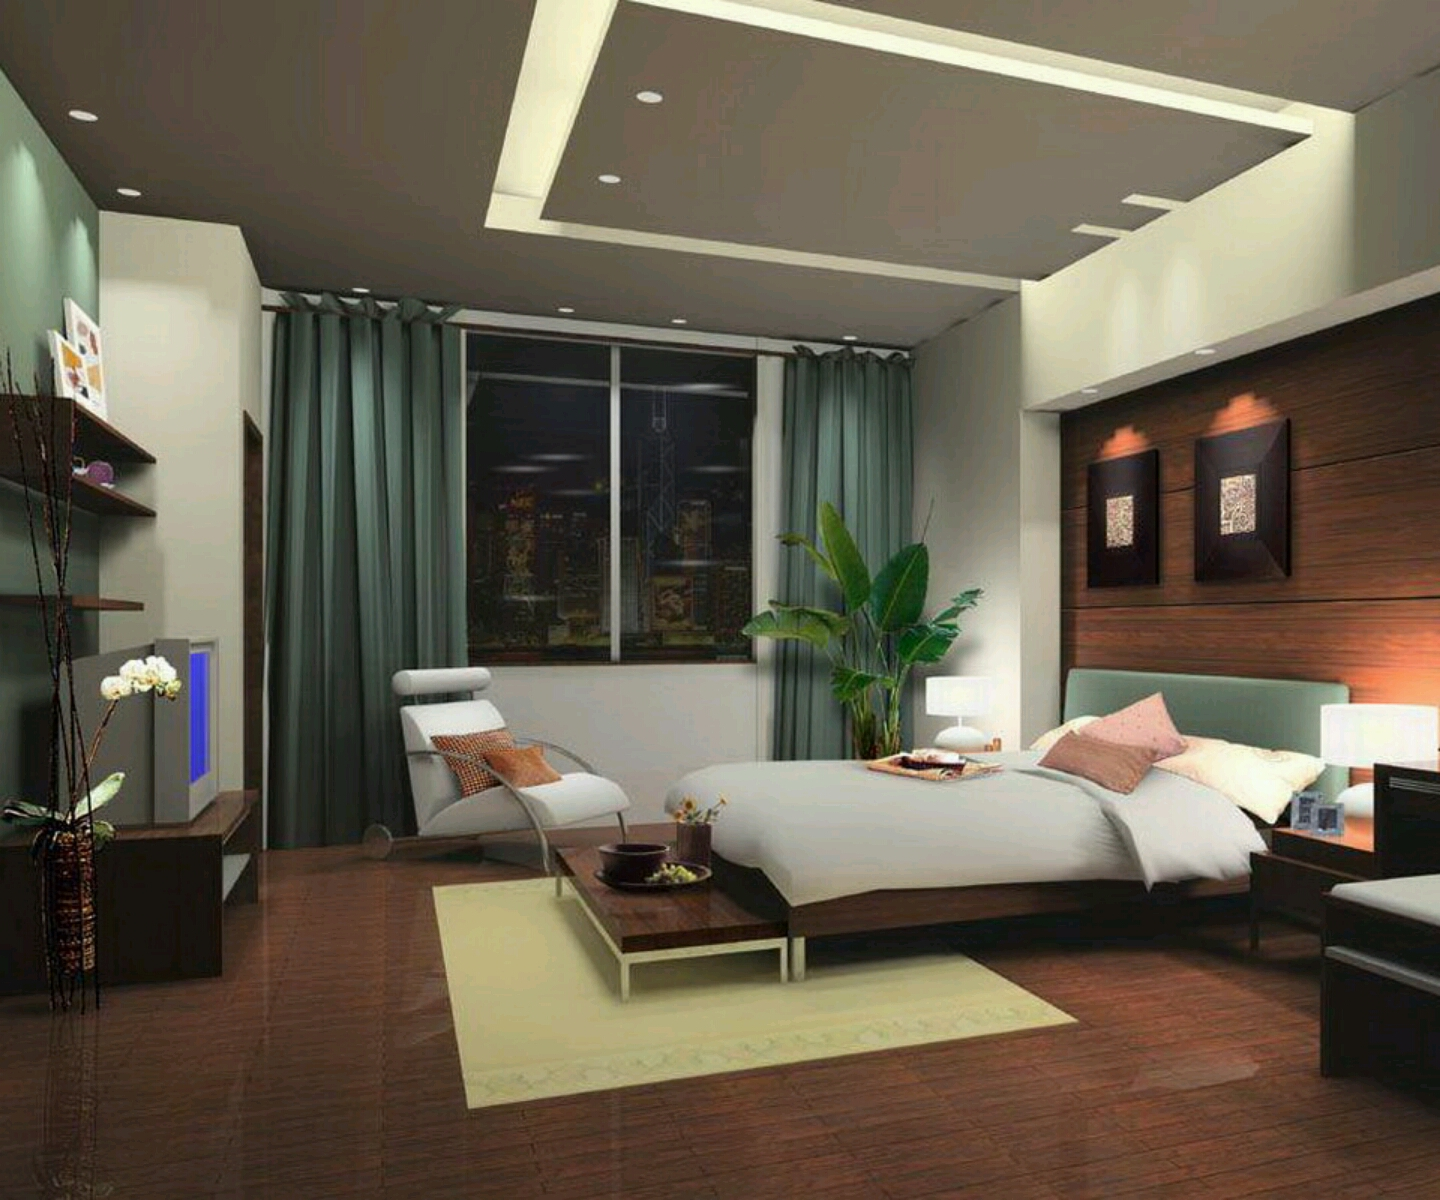 New home designs latest modern bedrooms designs best ideas for Purple bedroom designs modern